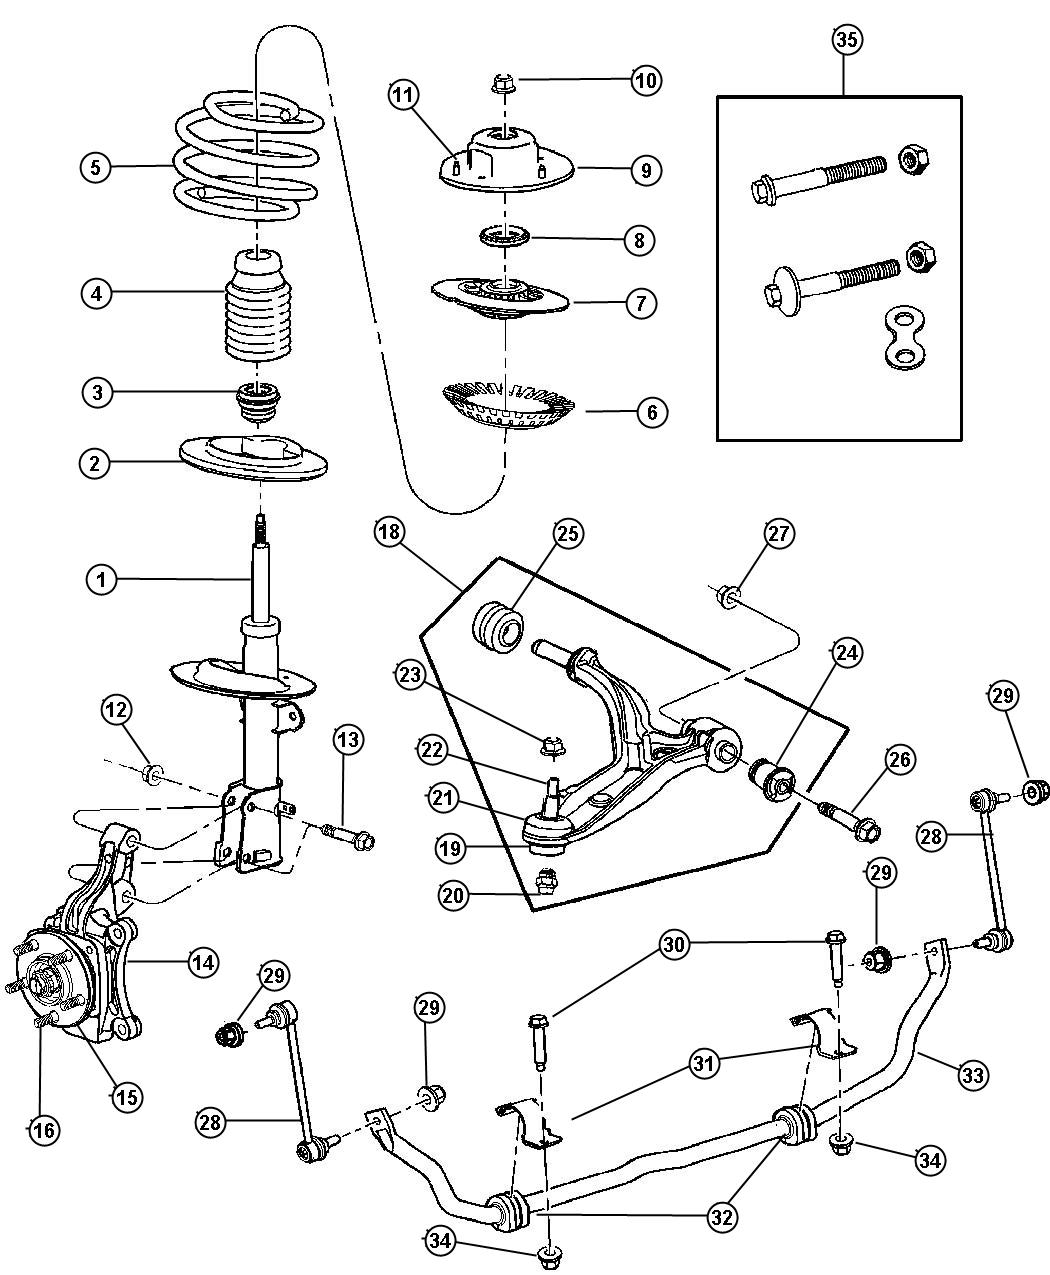 Dodge Neon Wiring Diagram Download Diagrams. Dodge. Auto